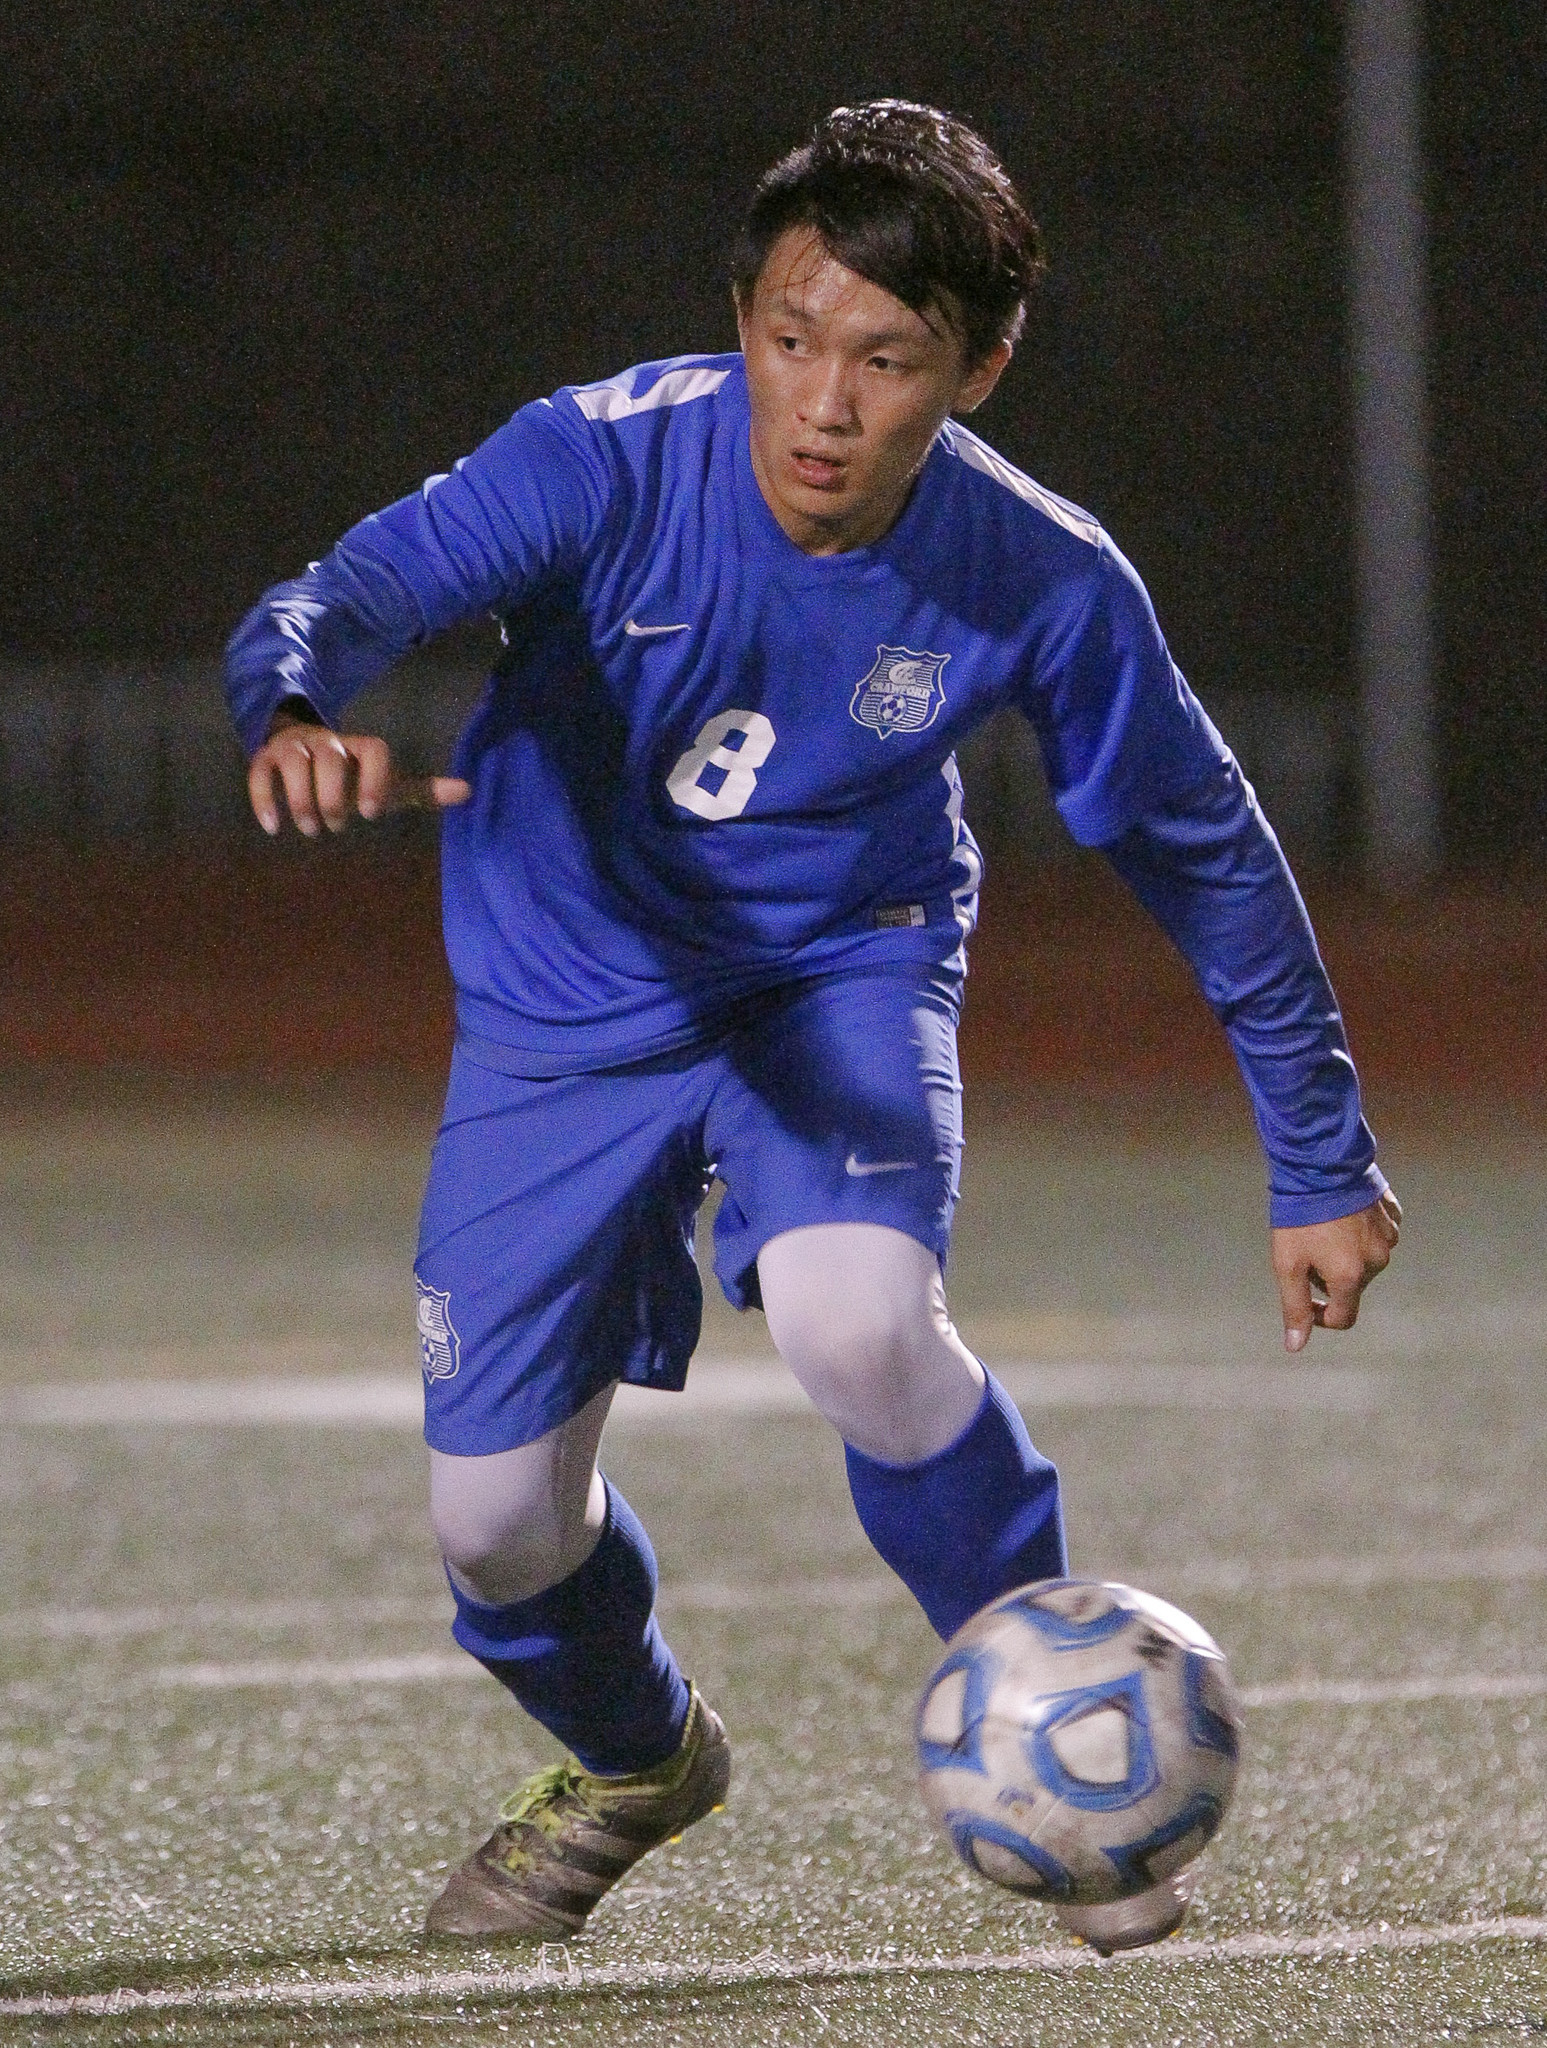 Vietnam native Tin Nguyen will attend Cal State East Bay.